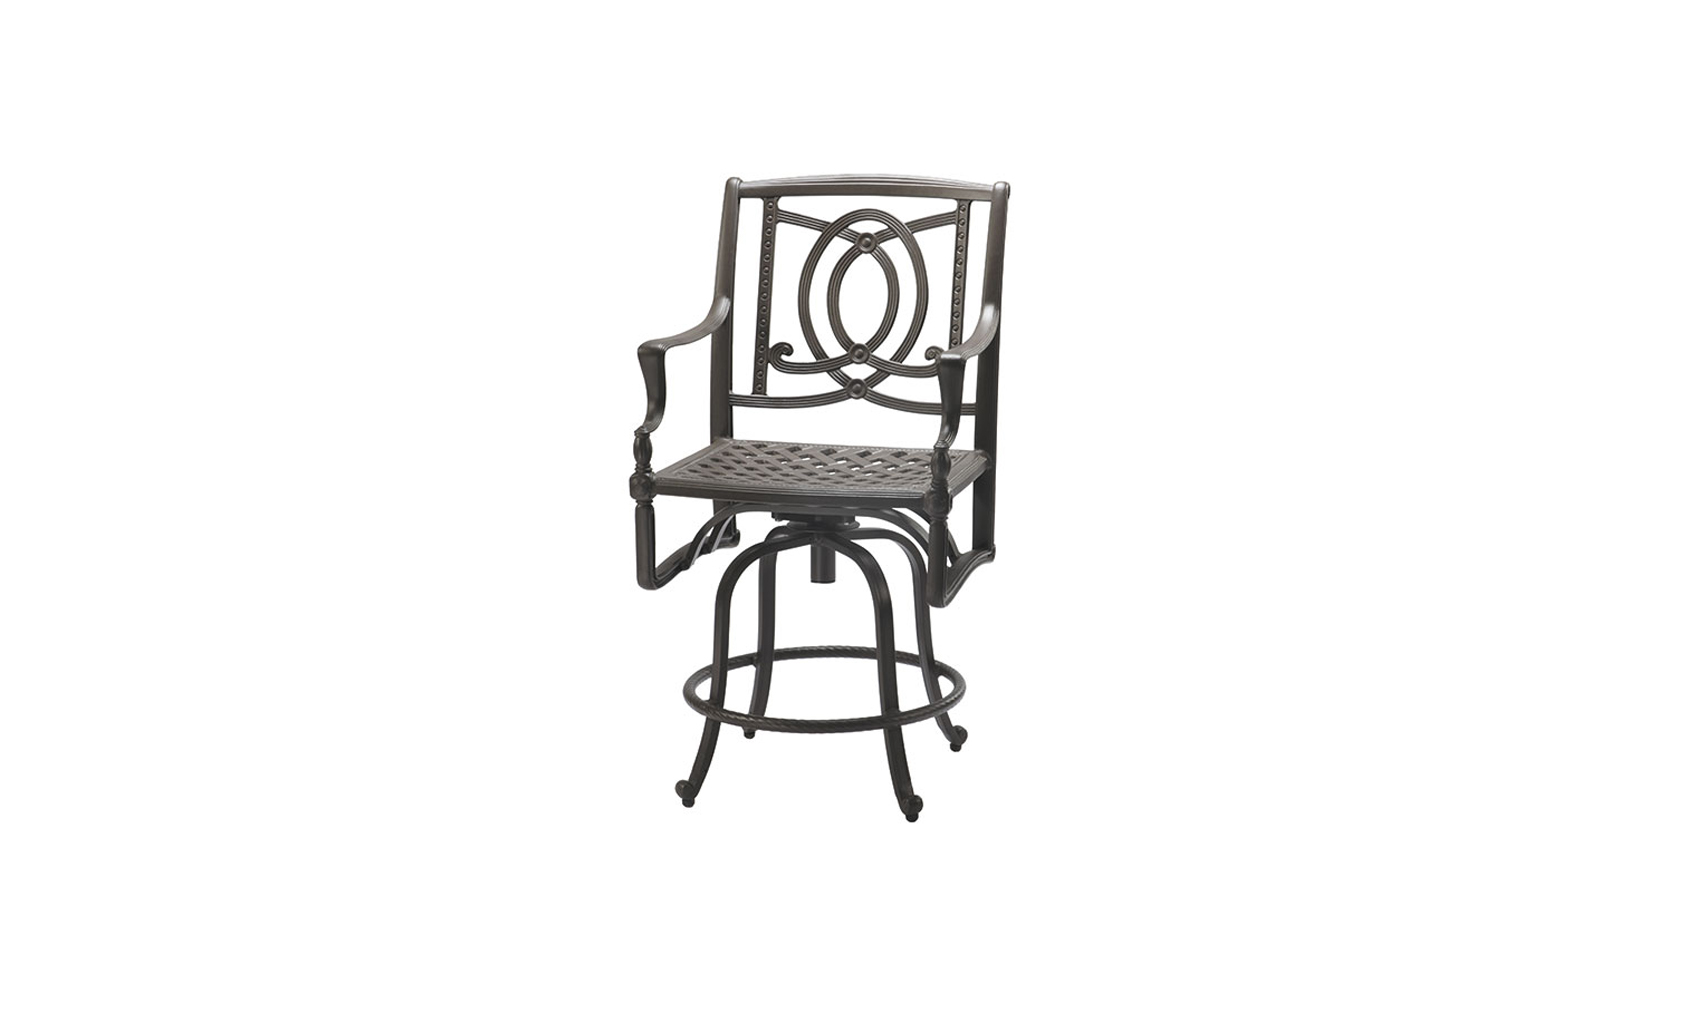 Bel Air Cushion Swivel Balcony Stool Outdoor Living Concepts